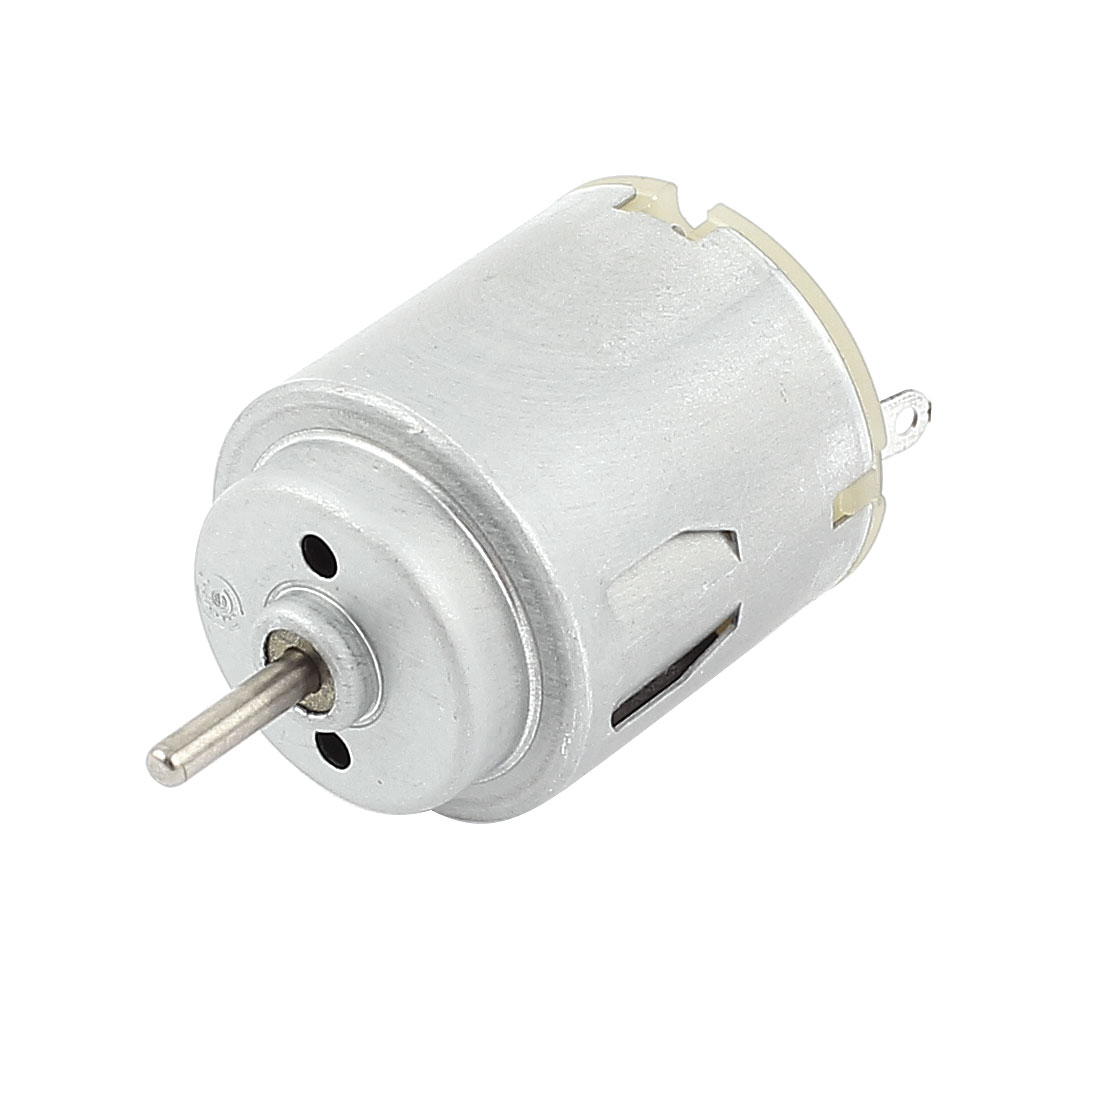 DC 6V 22000RPM Round Shaped Miniature Vibration Motor for DIY Toy Cars